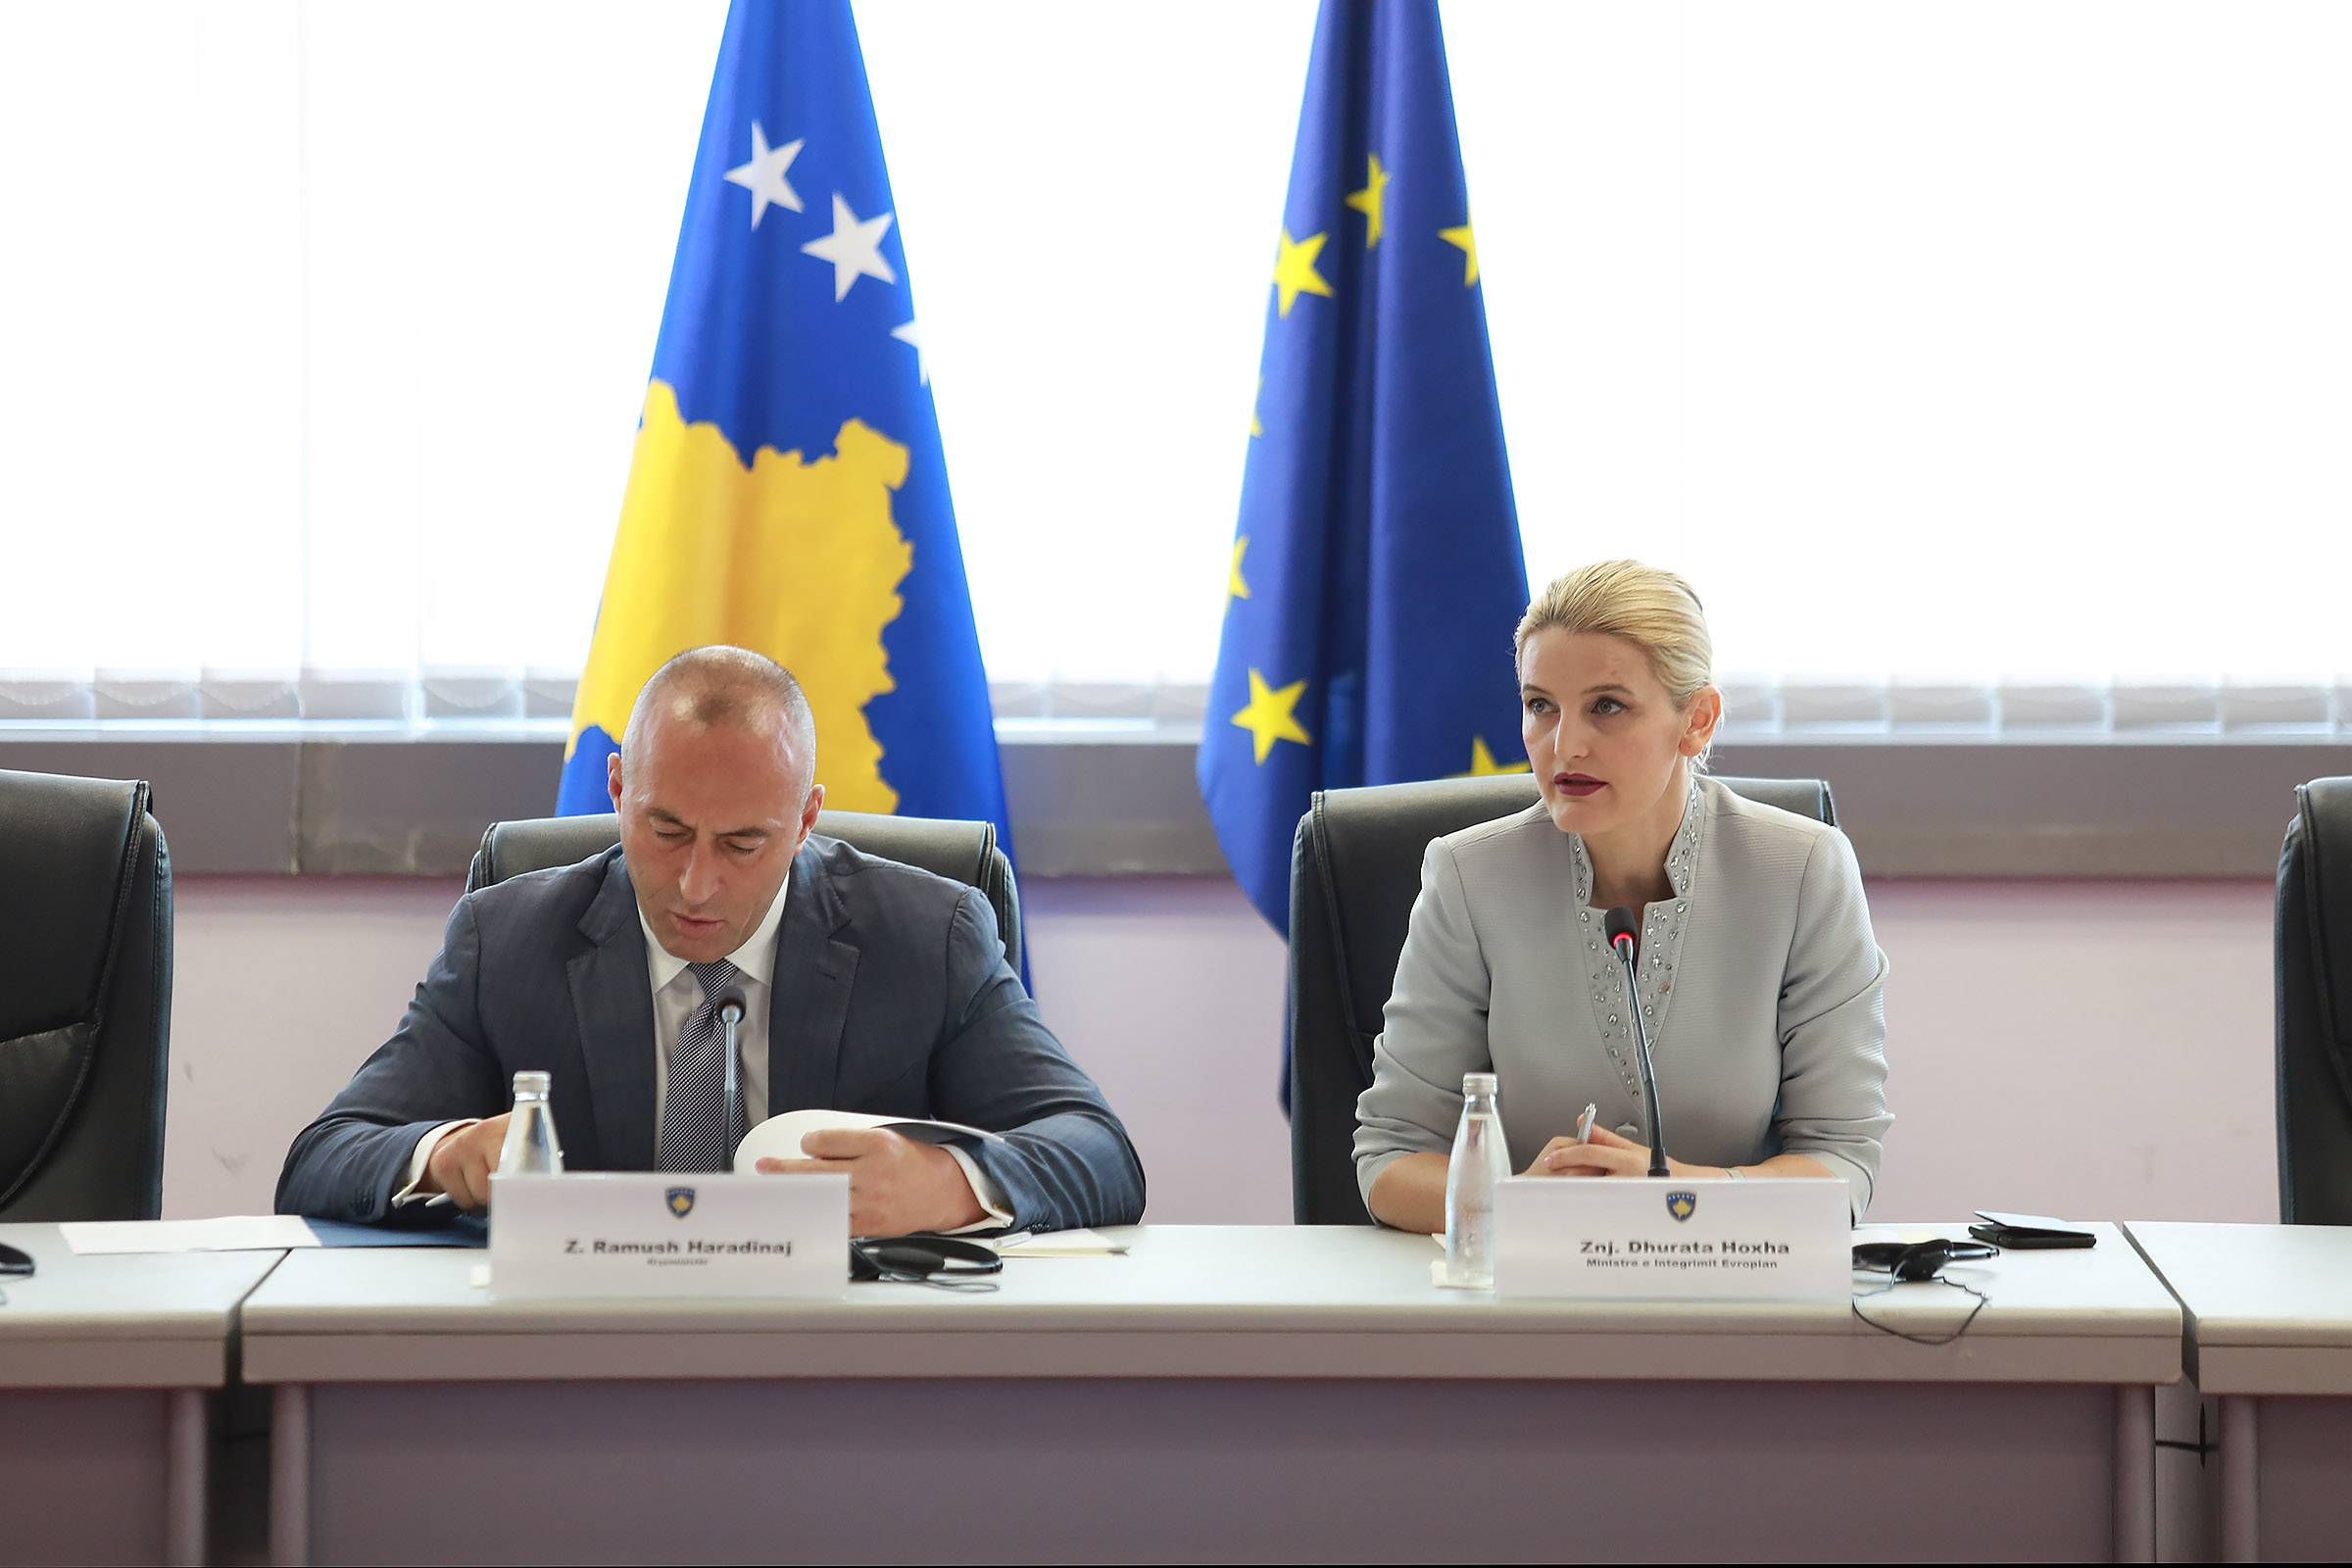 Minister Hoxha seeks more commitment to the European Reform Agenda